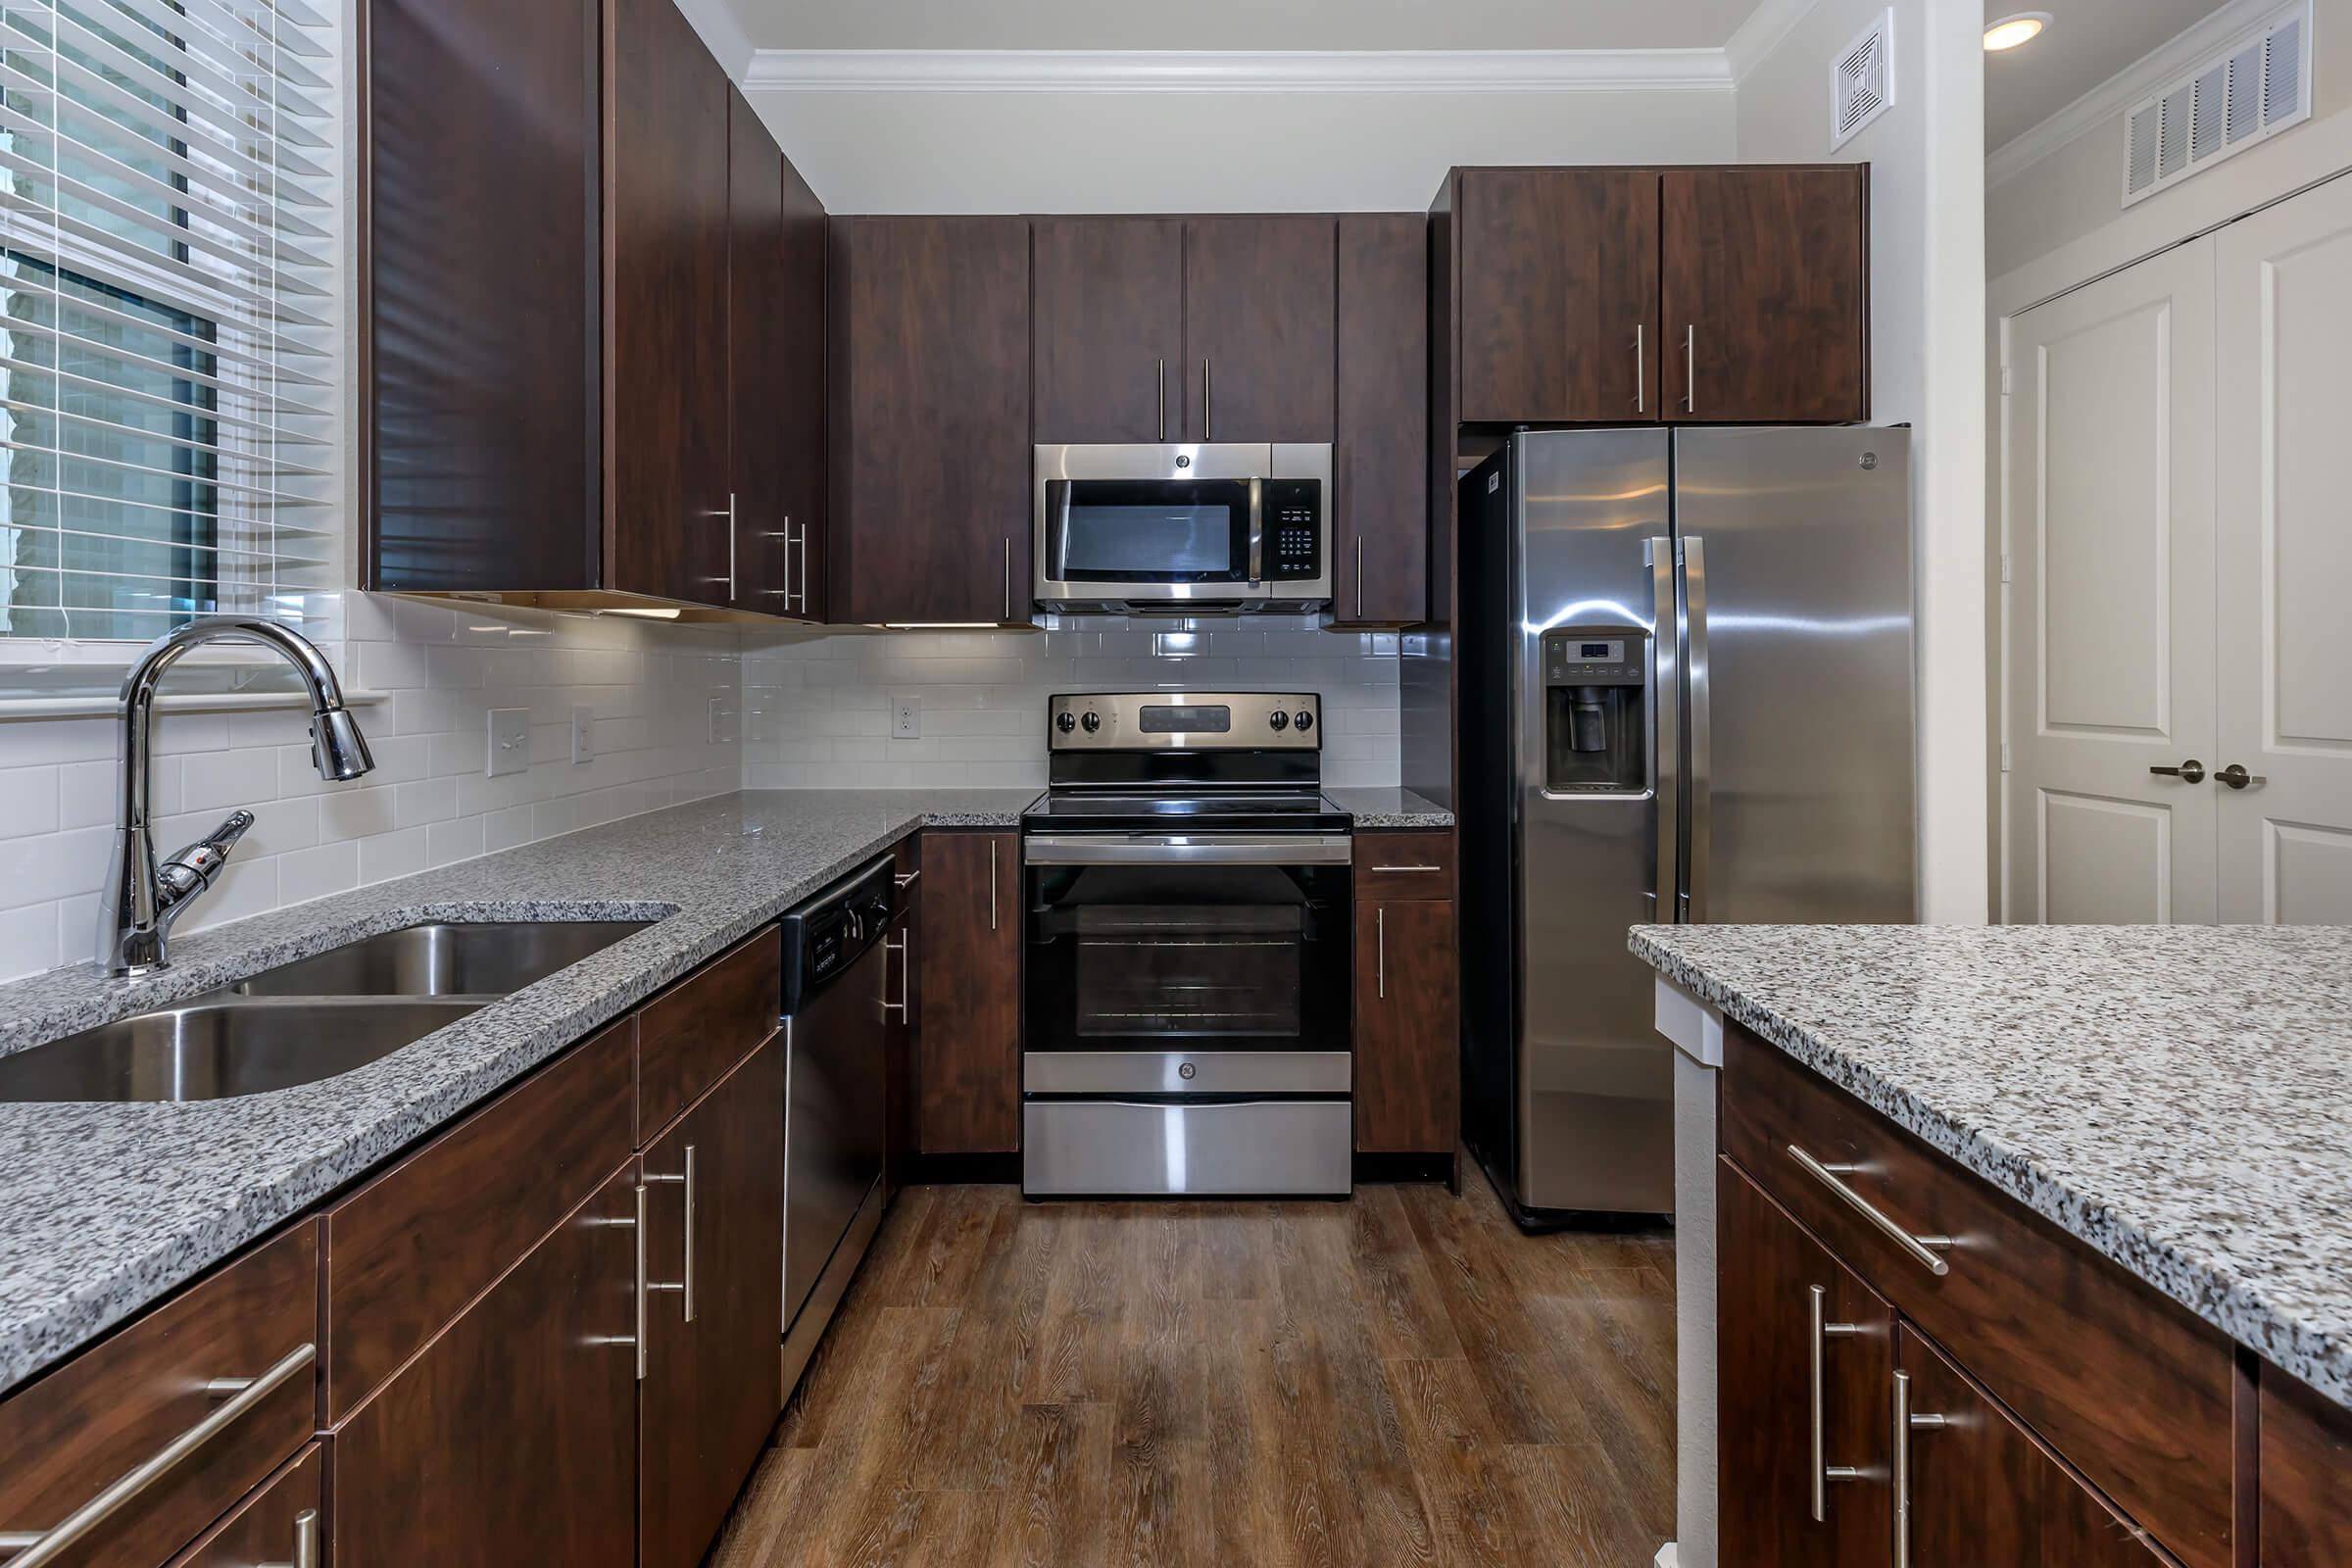 ALL-ELECTRIC KITCHEN AT IVY POINT CYPRESS